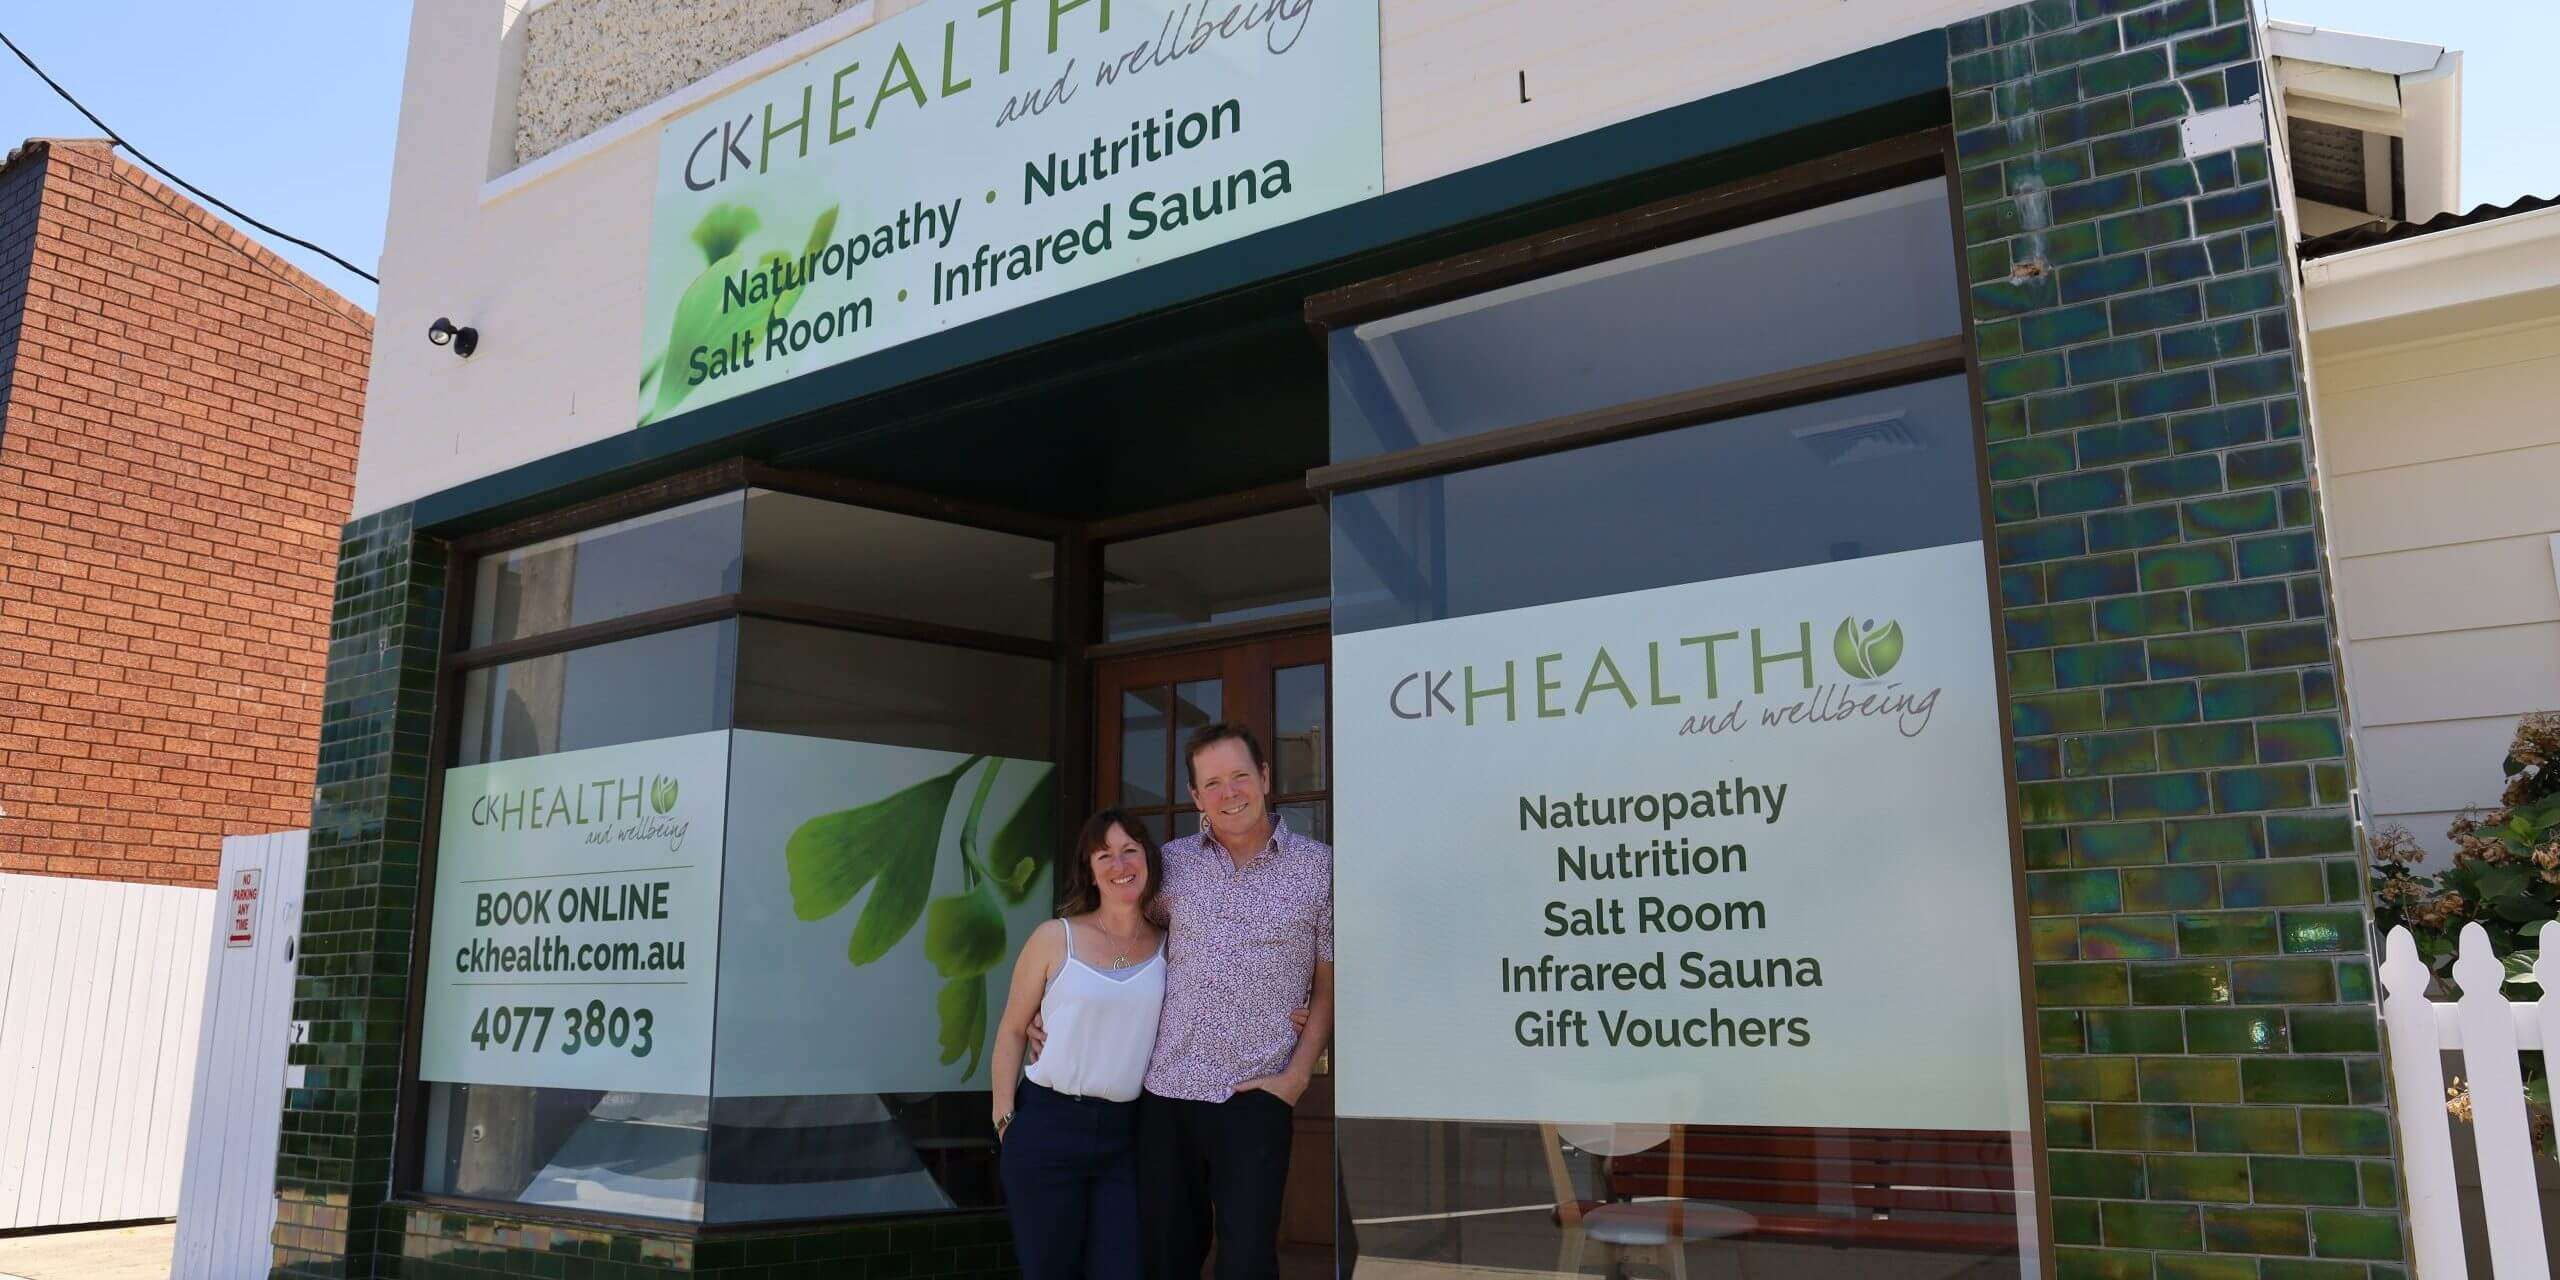 CK Health and Wellbeing - Newcastle Naturopaths Clinic